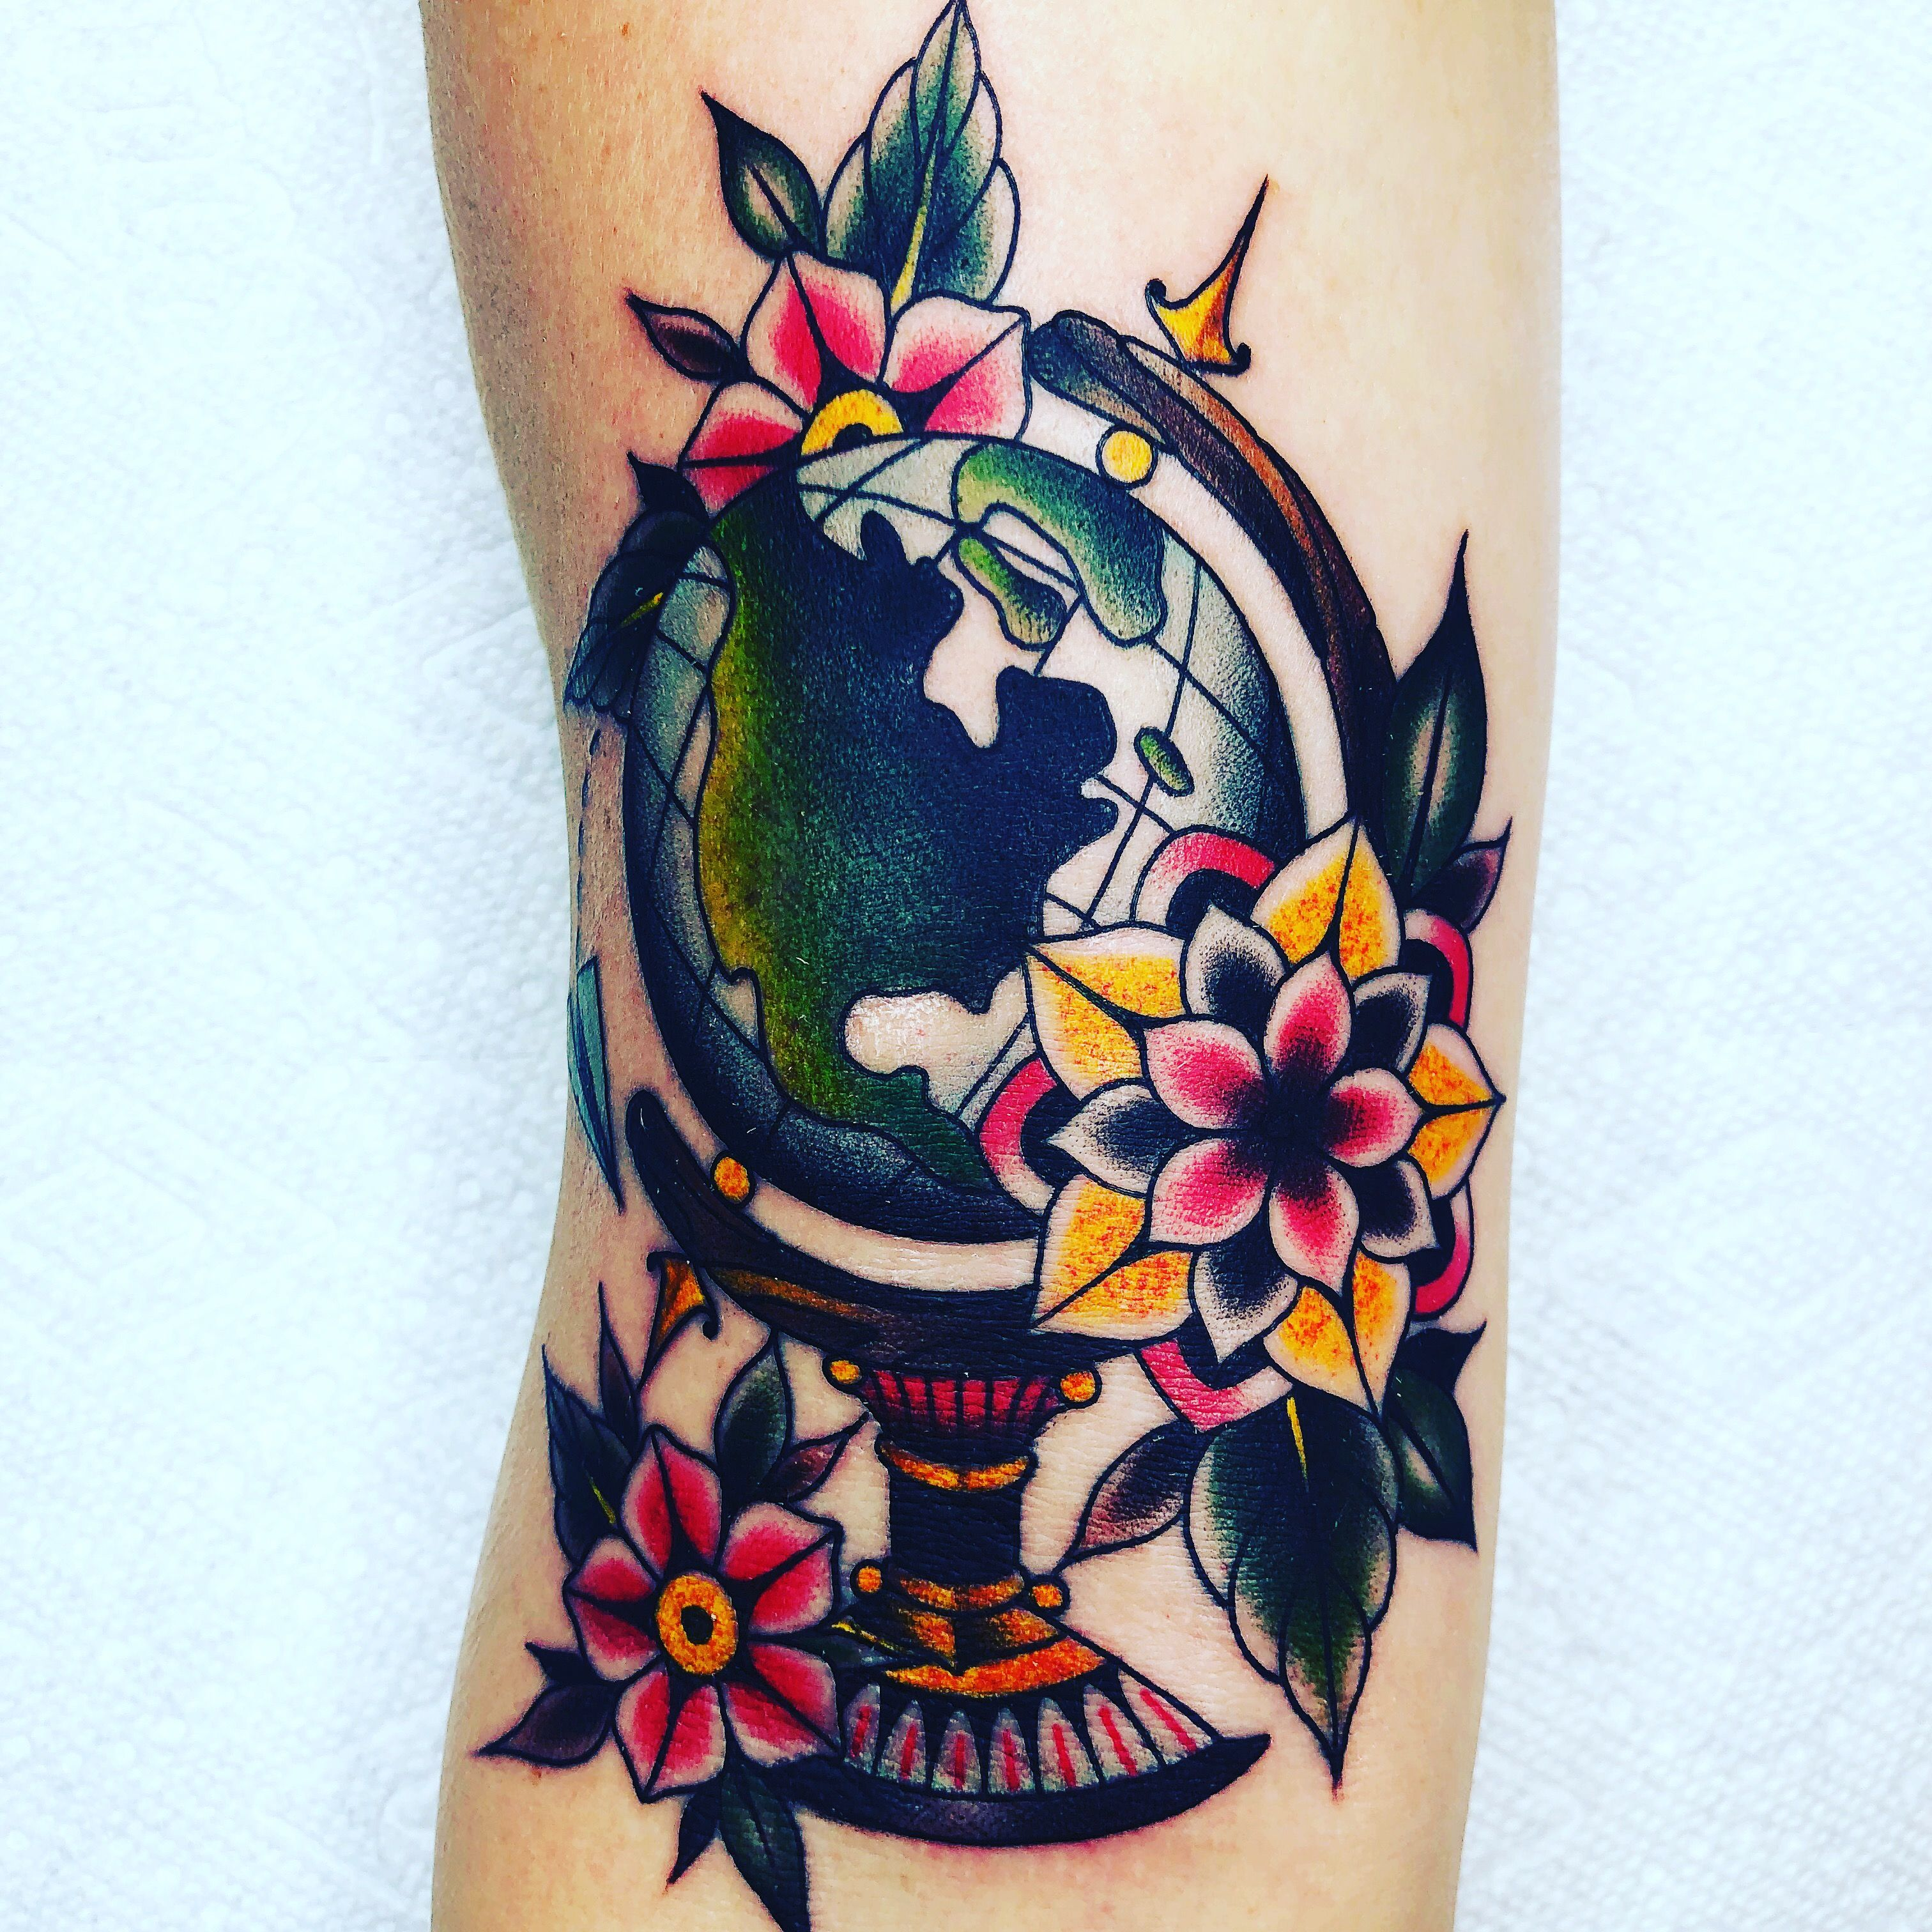 Globe Tattoo Full Circle Tattoo San Diego Artist Devxruiz Wereldbol